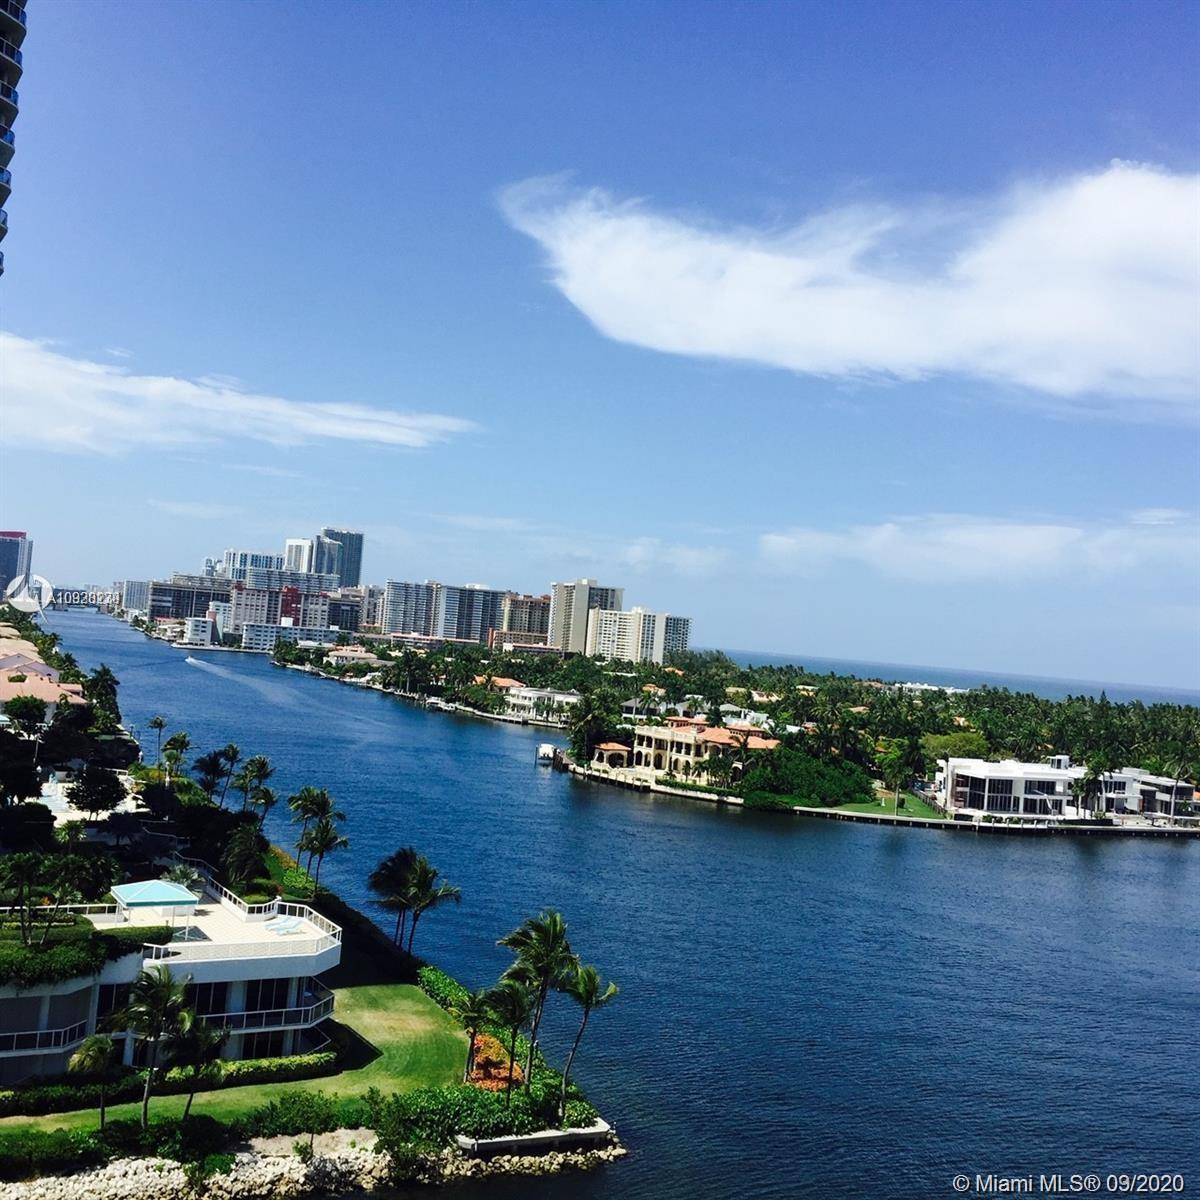 IMMACULATELY REMODELED TWO BEDROOM TWO BATH CONDO WITH INTRACOASTAL AND OCEAN VIEWS. MOVE IN READY.